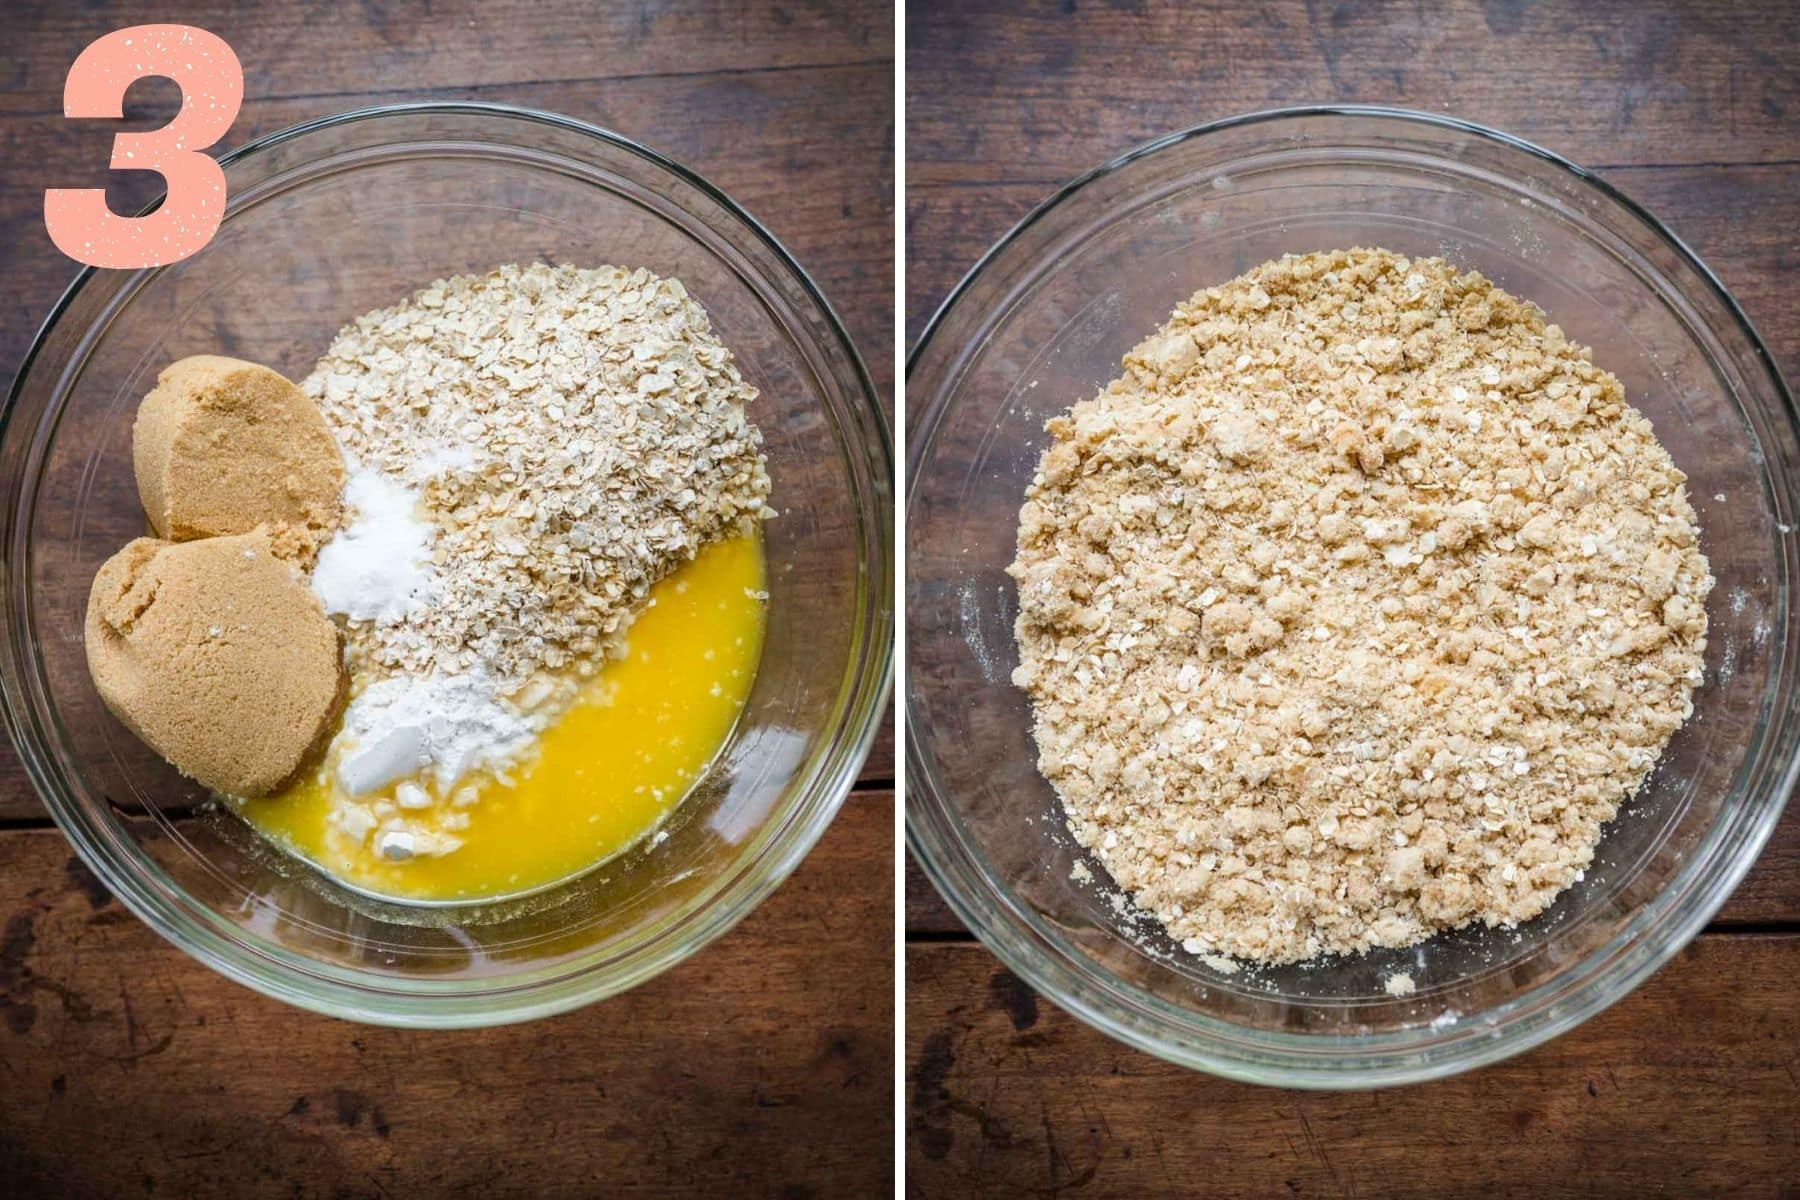 Overhead shots of the mixture ingredients coming together to form a crumble.